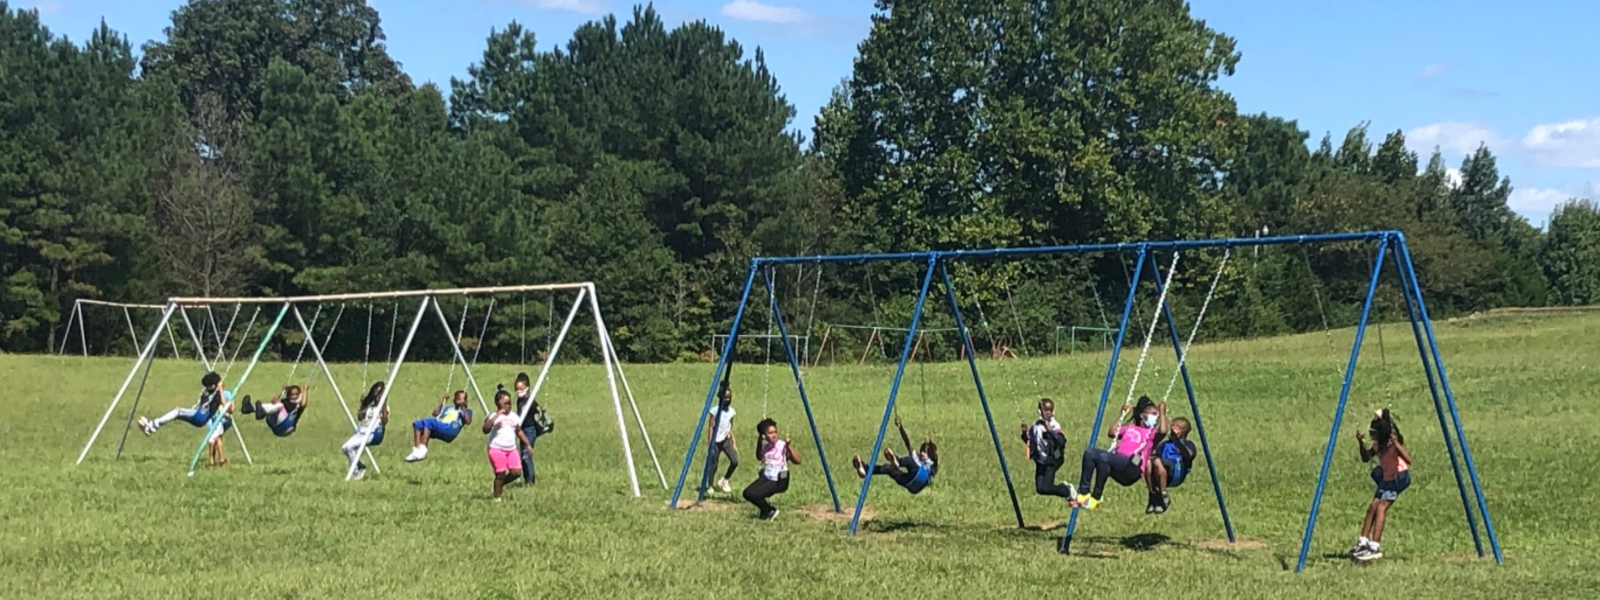 Swingsets repaired at Ashland Elementary